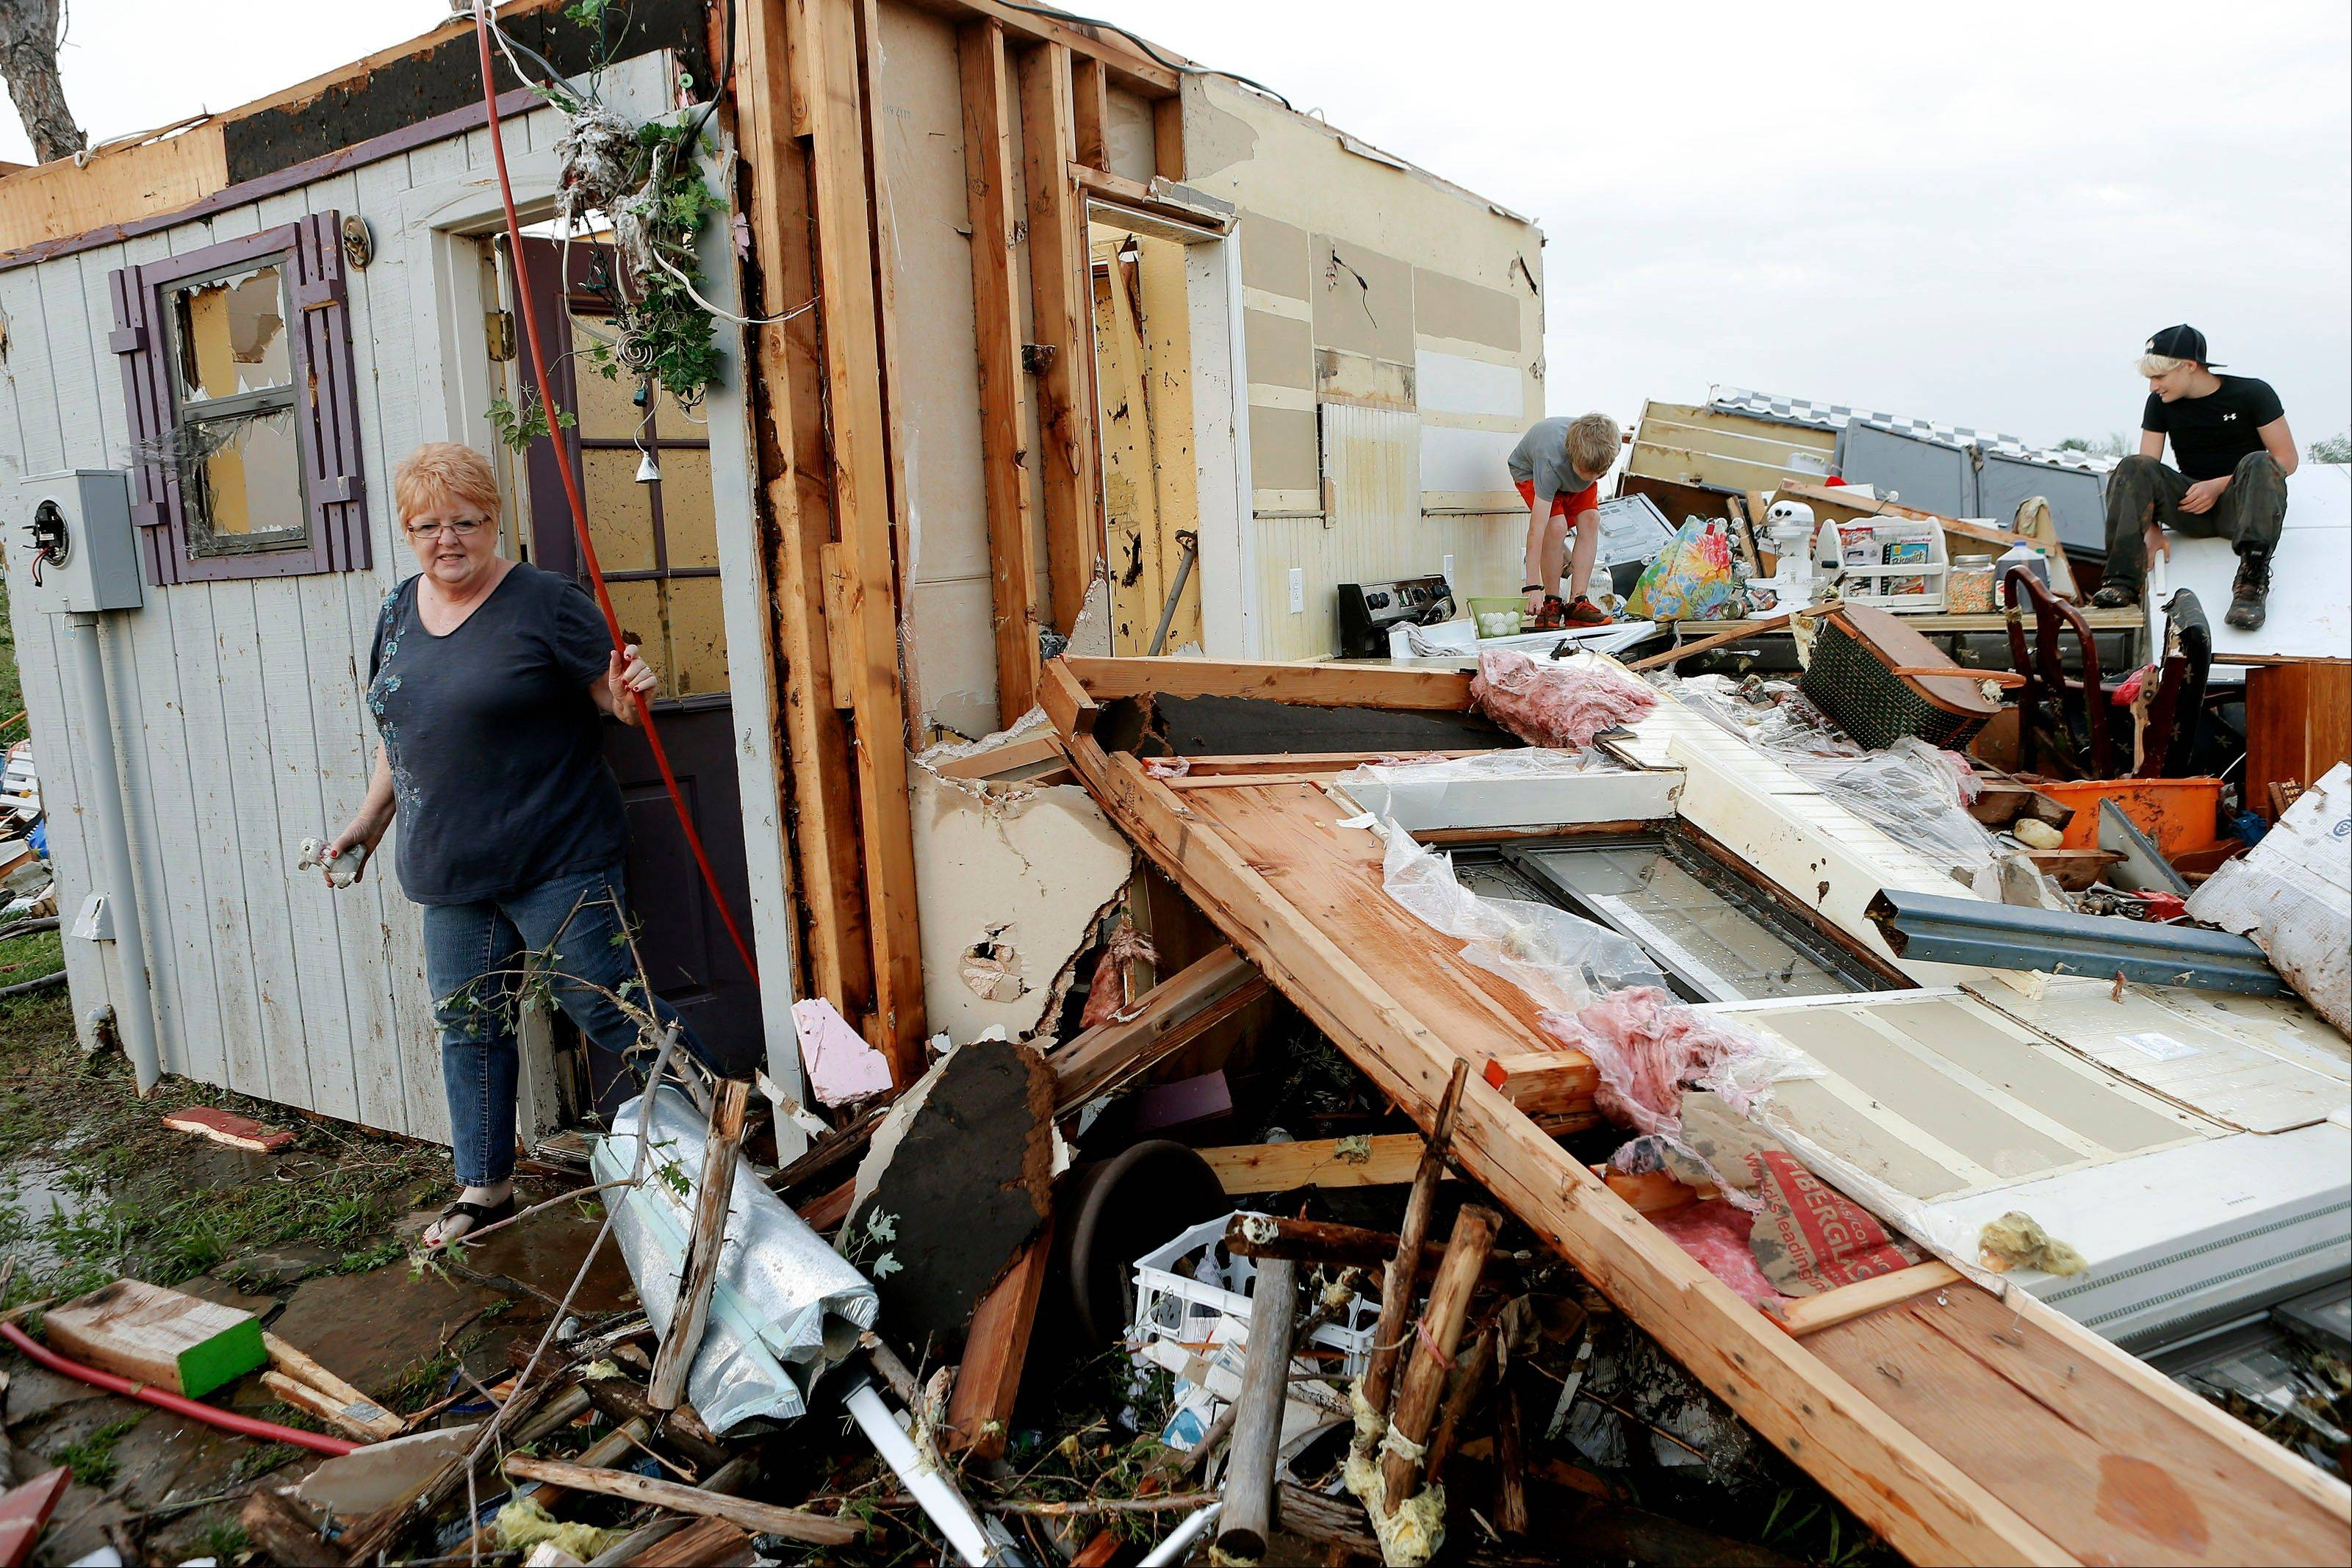 Marlena Hodson walks out of her home as her grandsons, Campbell Miller, 10, and Dillon Miller, 13, at right, help her sort through belongings after a tornado damaged her home Carney Okla., on Sunday, May 19, 2013. Hodson and her family left the home to escape the tornado.